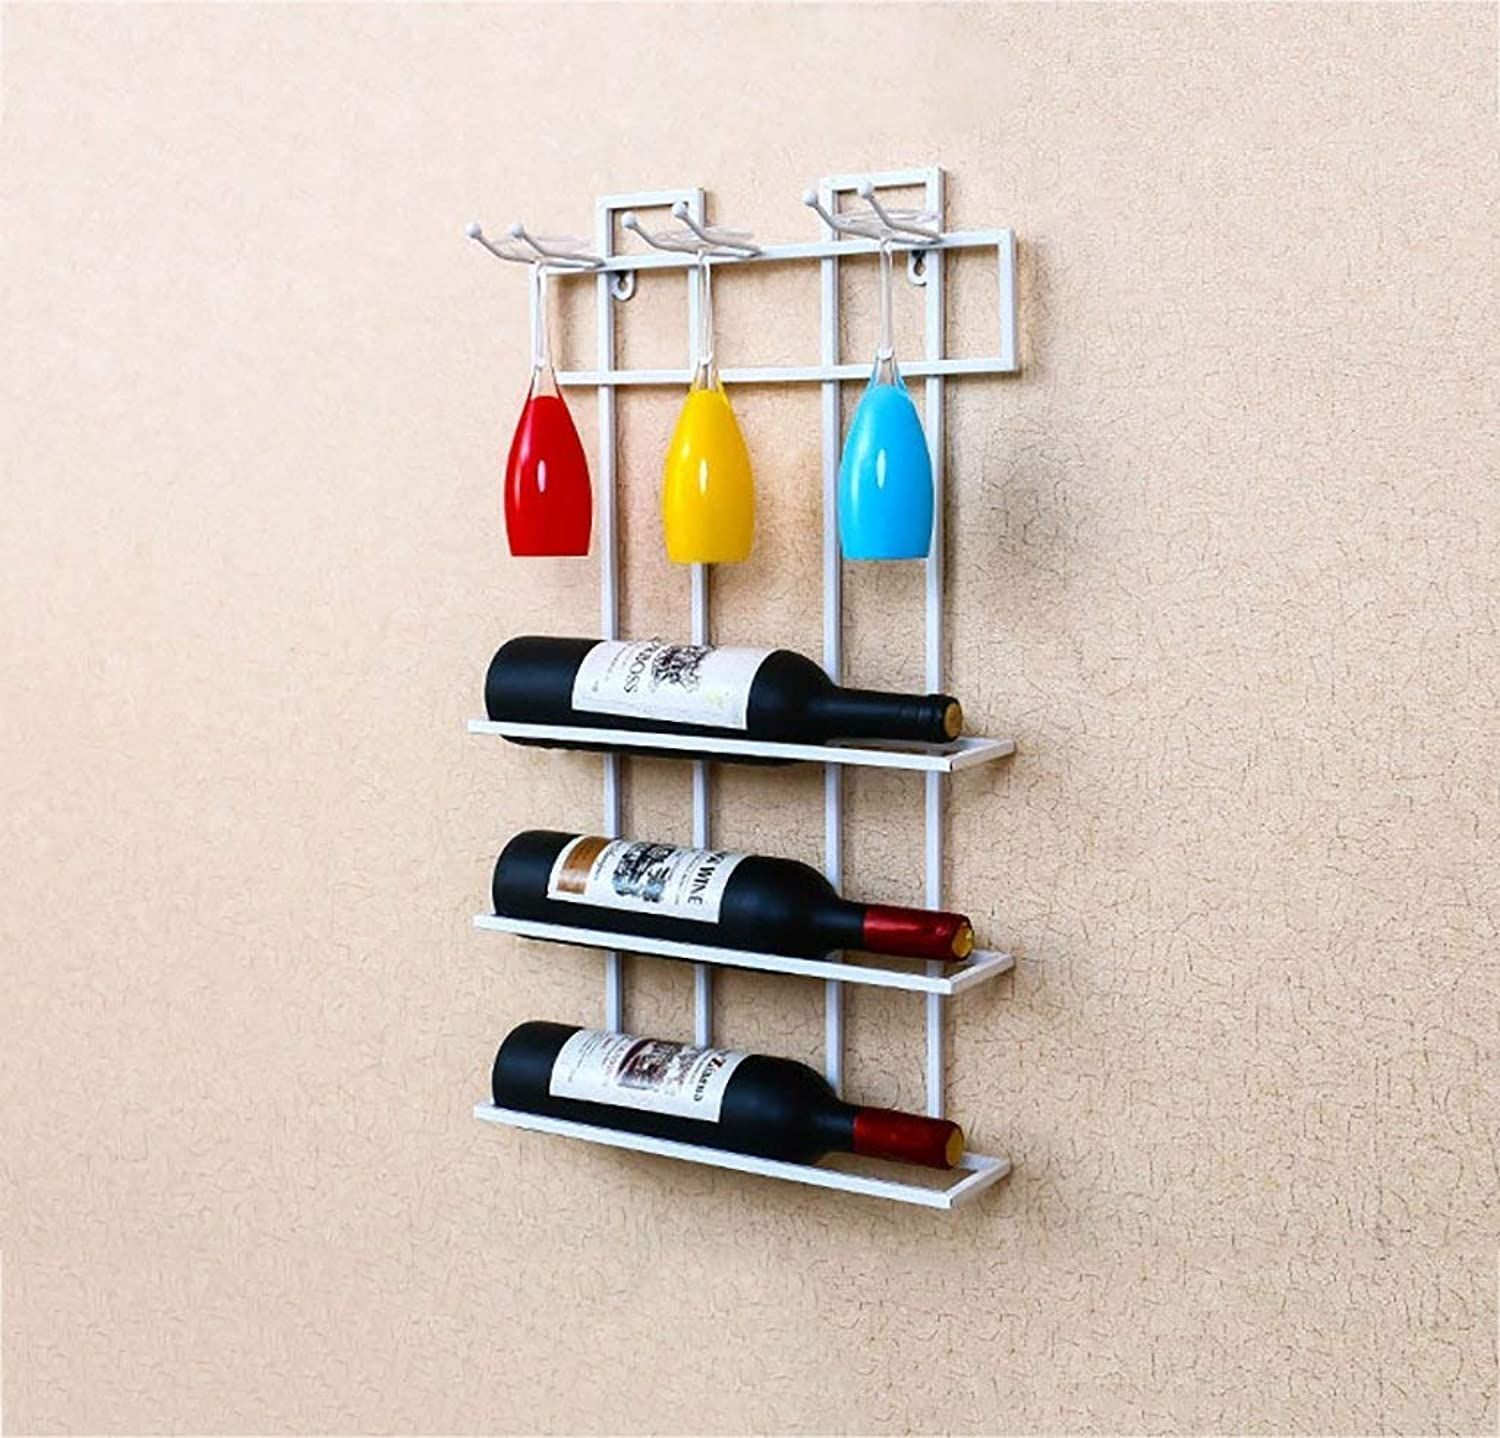 Red Wine Shelf Wine Racks Metal Wall Mounted Wine Racks European Style Iron Multi-Bottle Red Wine Bottle Holder Upside Down Creative Wine Racks (Black, Bronze, White, Three colors Available) (color